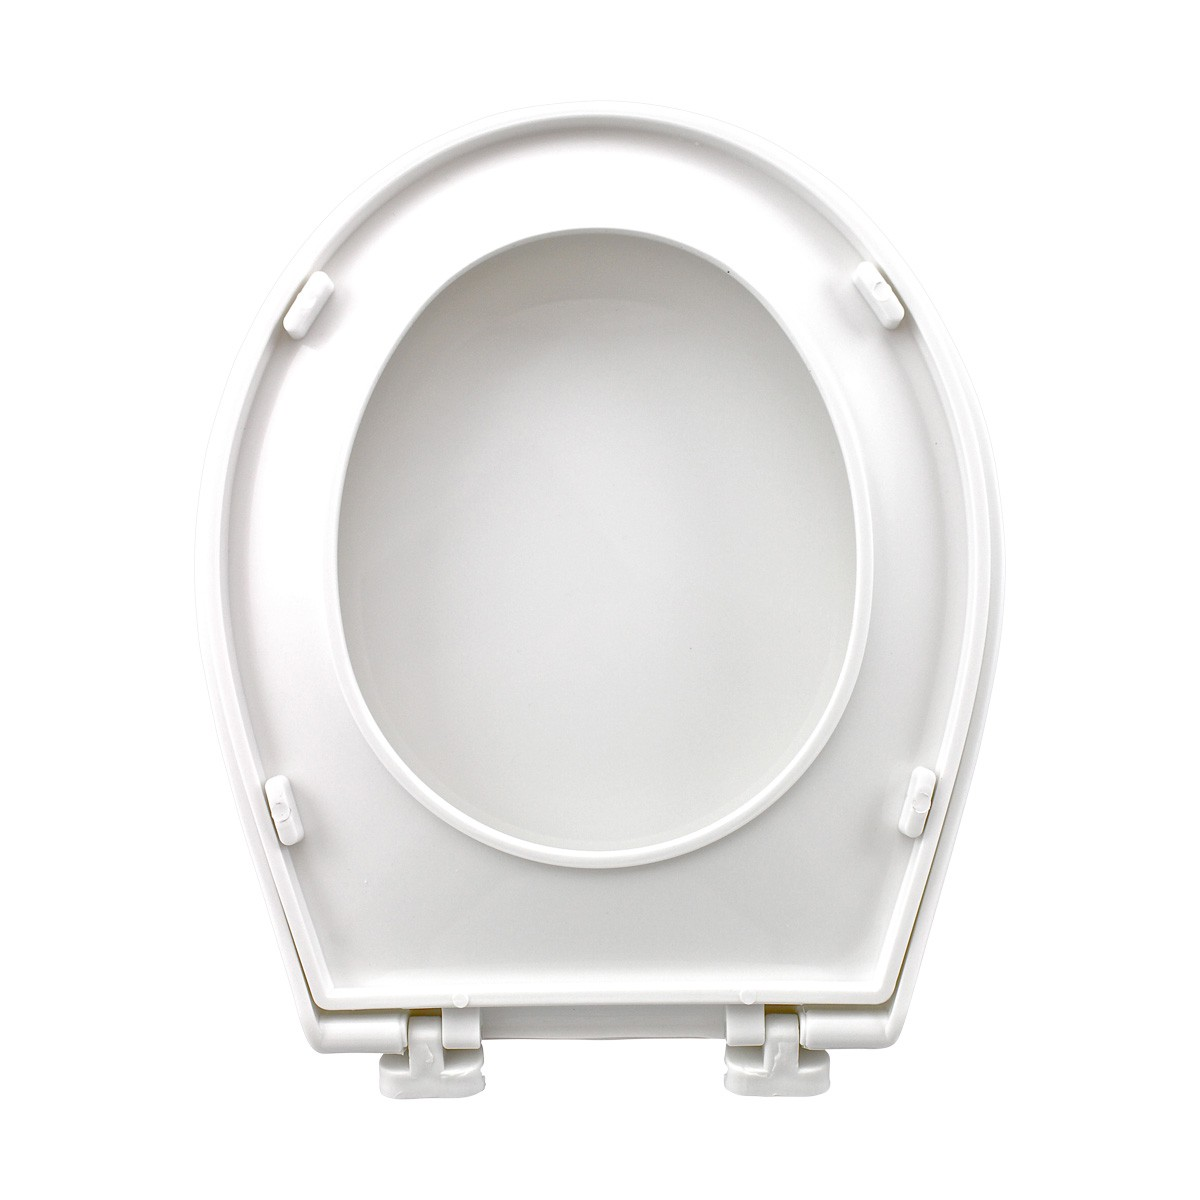 Child Sized Toilet Seat Replacement White Molded Plastic set of 2 novelty decorative replacement loo commode lavatory custom unusual luxury quality standard color design pretty